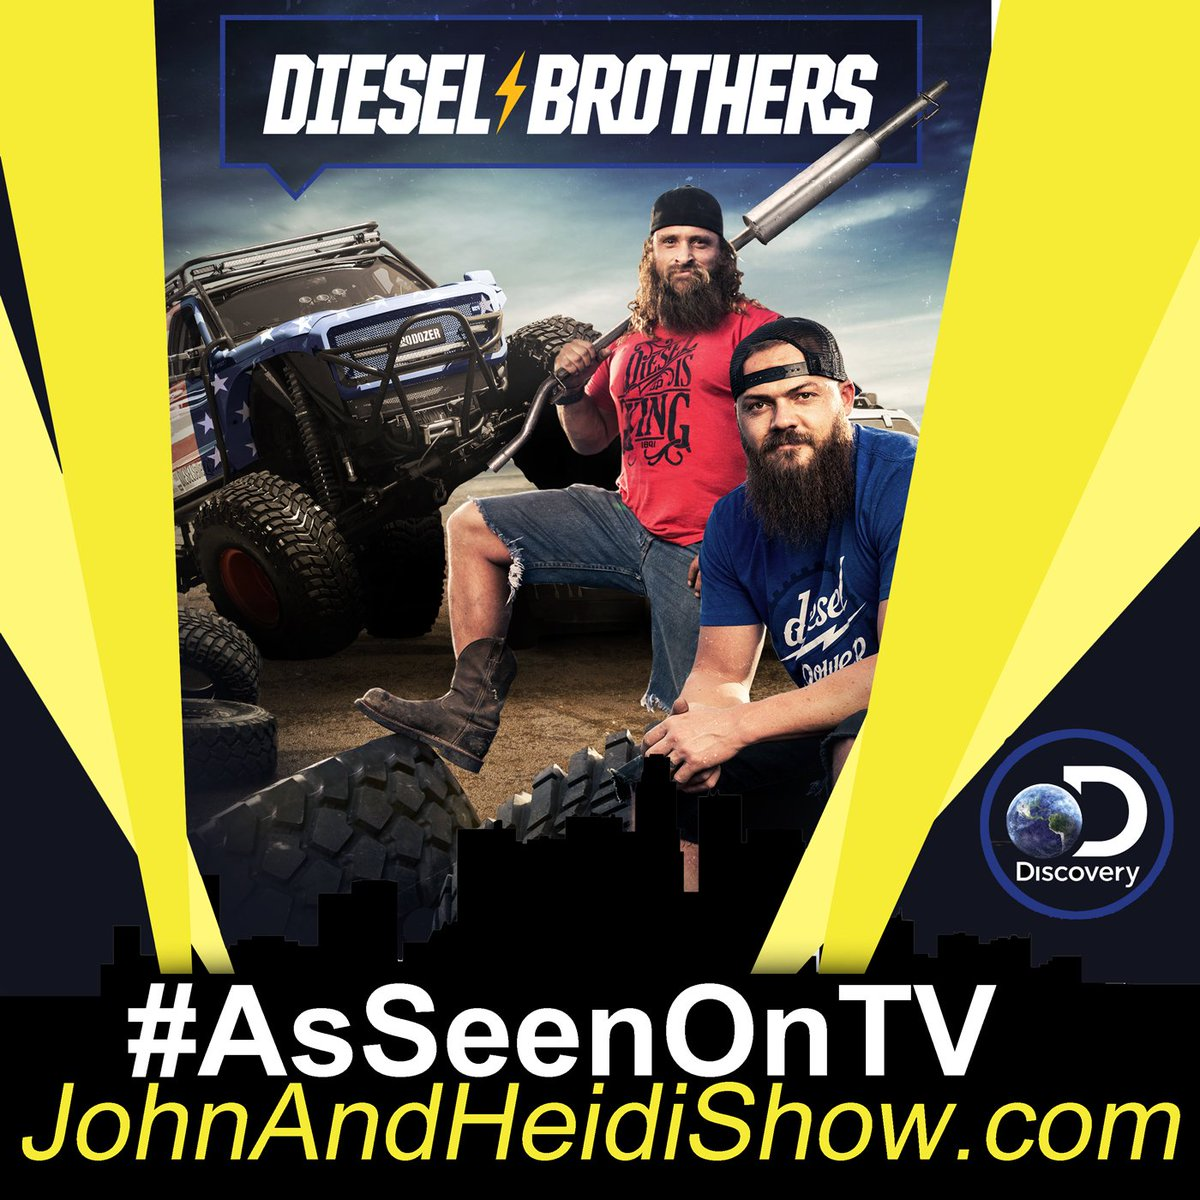 John and Heidi Show on Twitter: MONDAY we visit with Heavy D & Diesel Dave about the new season of DIESEL BROTHERS. (Mon, Dec 9 at 8pm ET/PT on #DiscoveryChannel) You can join the conversation by using the hashtag #DieselBrothers (follow them on social media for updates)  #HeavyD #DieselDave #Discovery #Trucks…